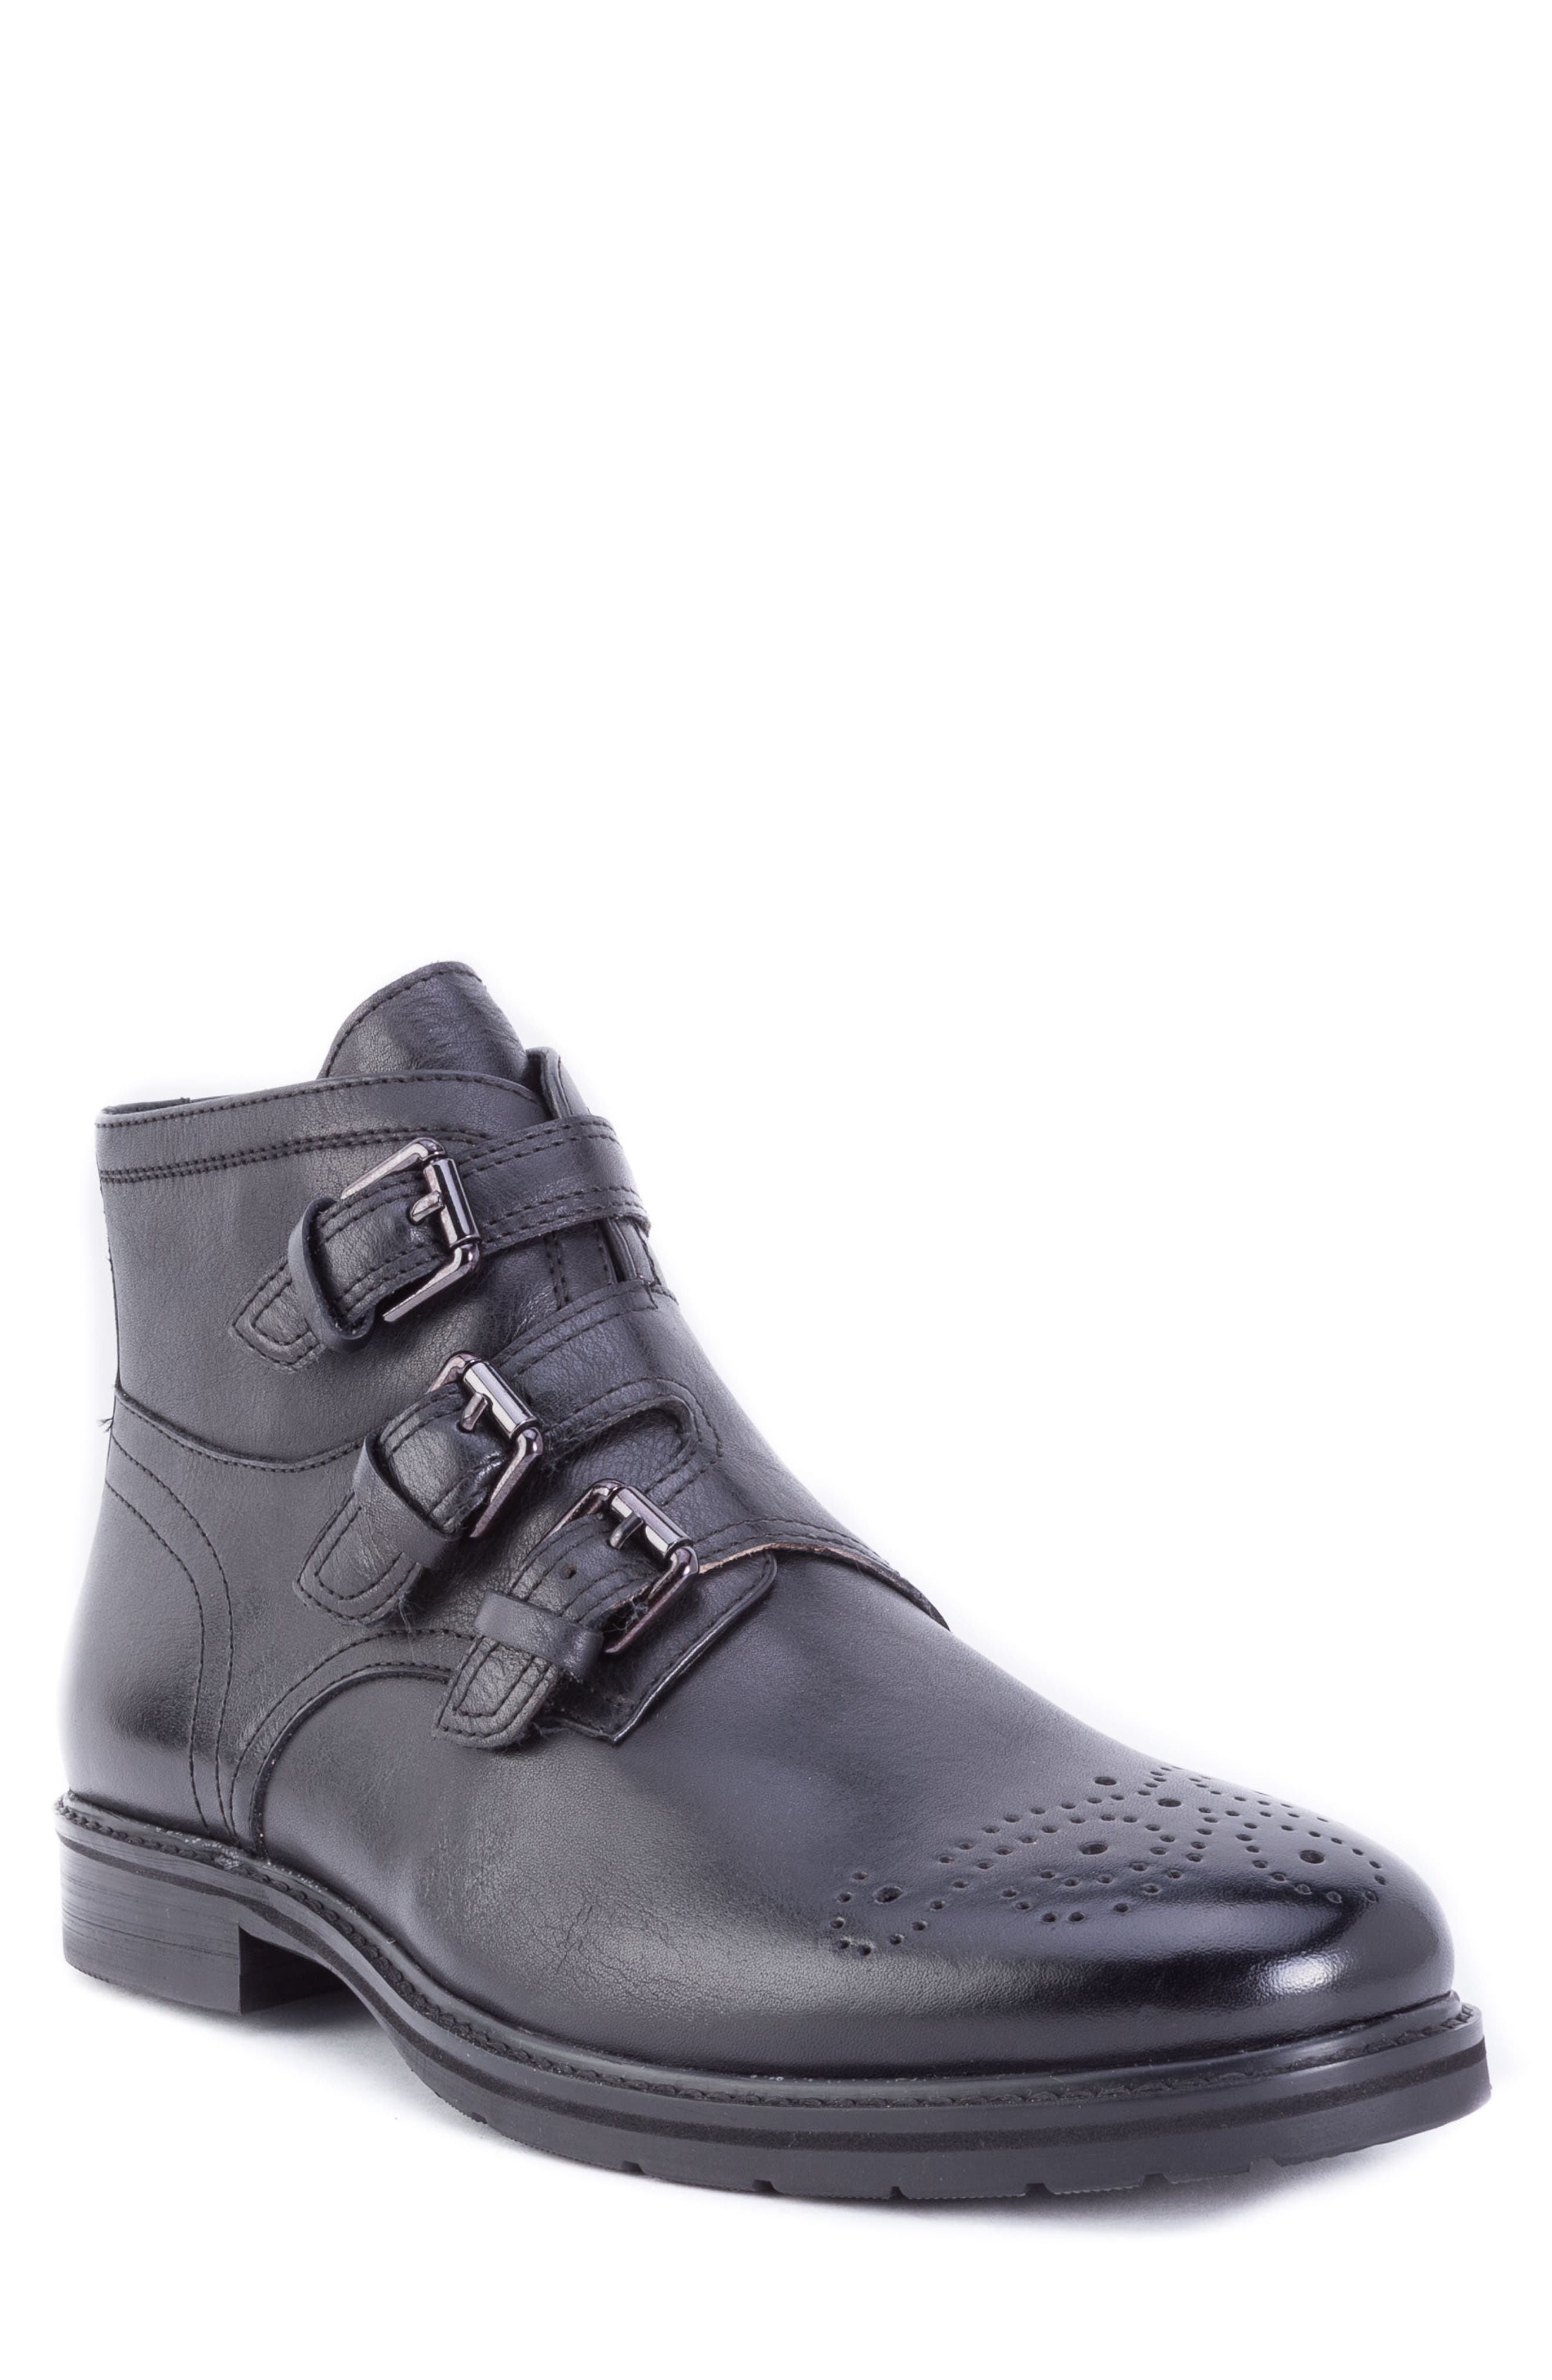 Malden Three Buckle Boot,                         Main,                         color, BLACK LEATHER